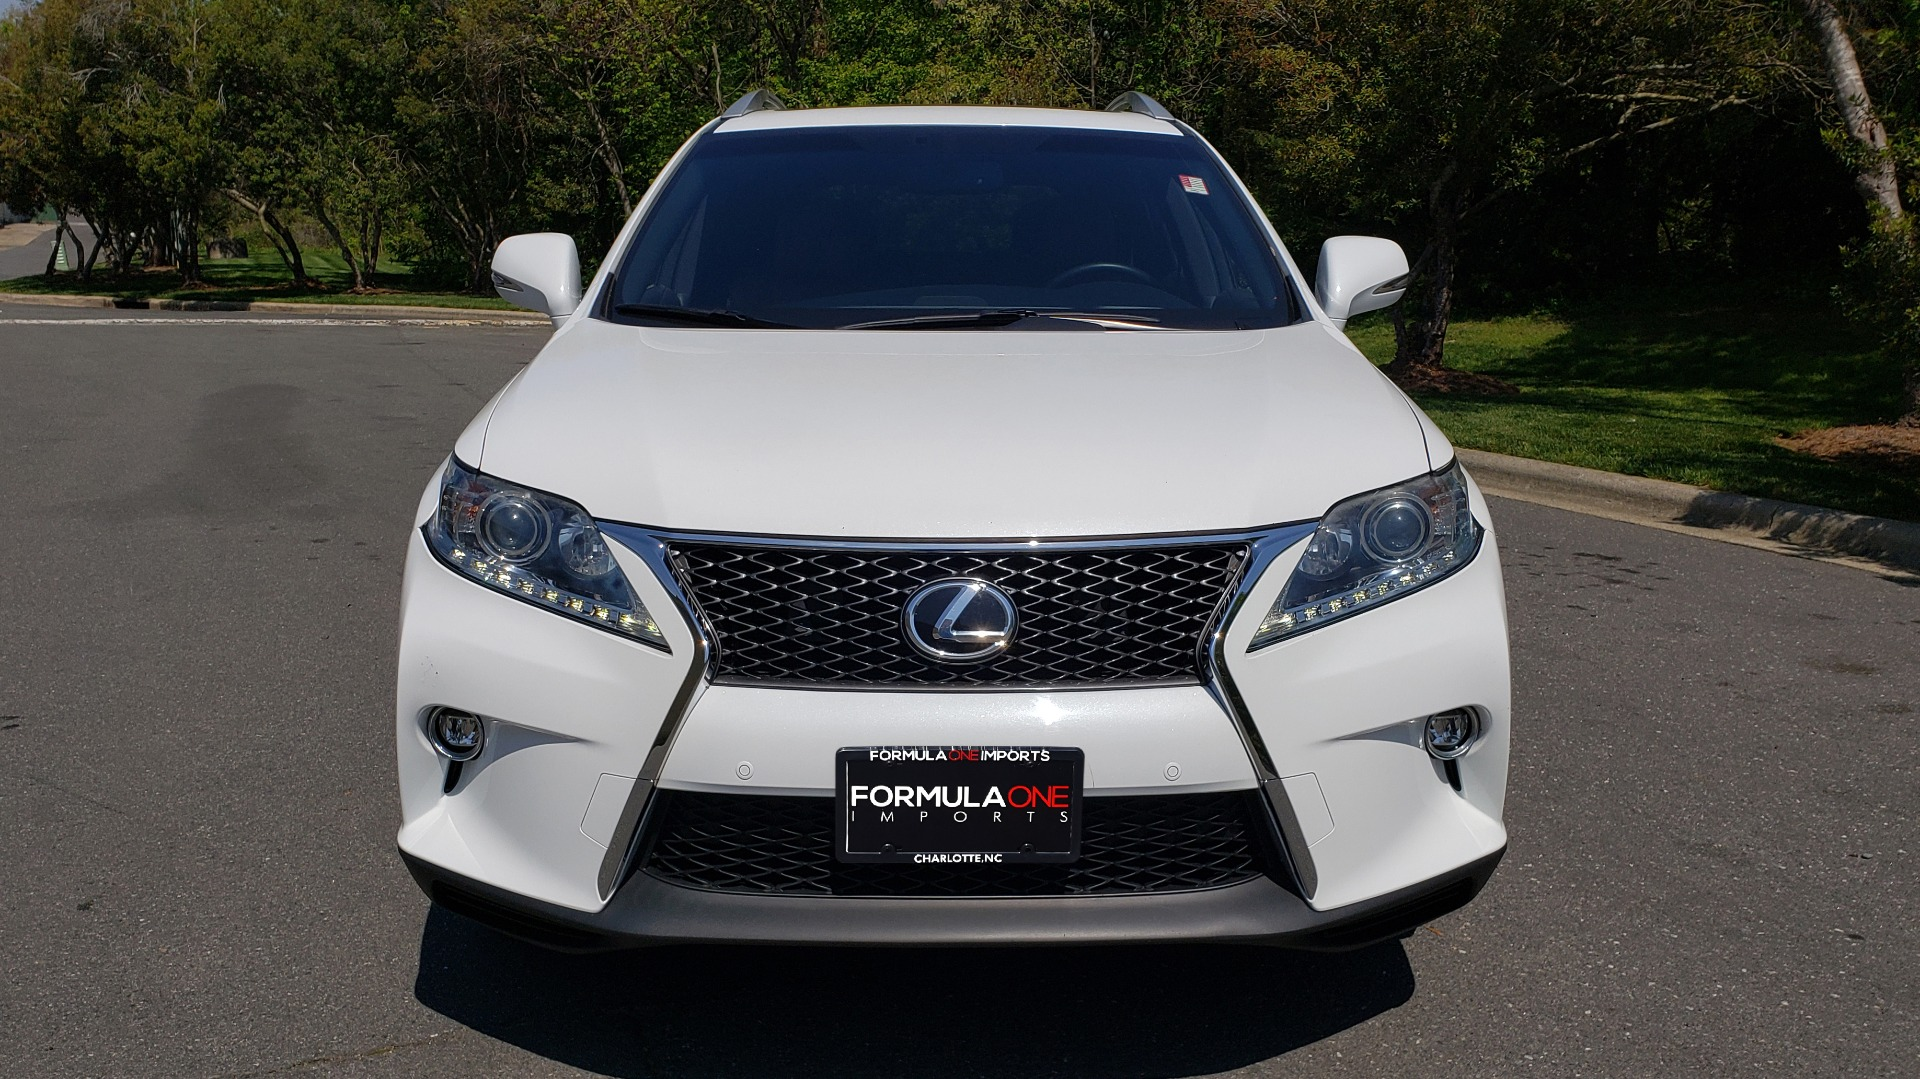 Used 2015 Lexus RX 350 AWD F-SPORT / NAV / SUNBROOF / REARVIEW / BSM / PARK ASST for sale Sold at Formula Imports in Charlotte NC 28227 16